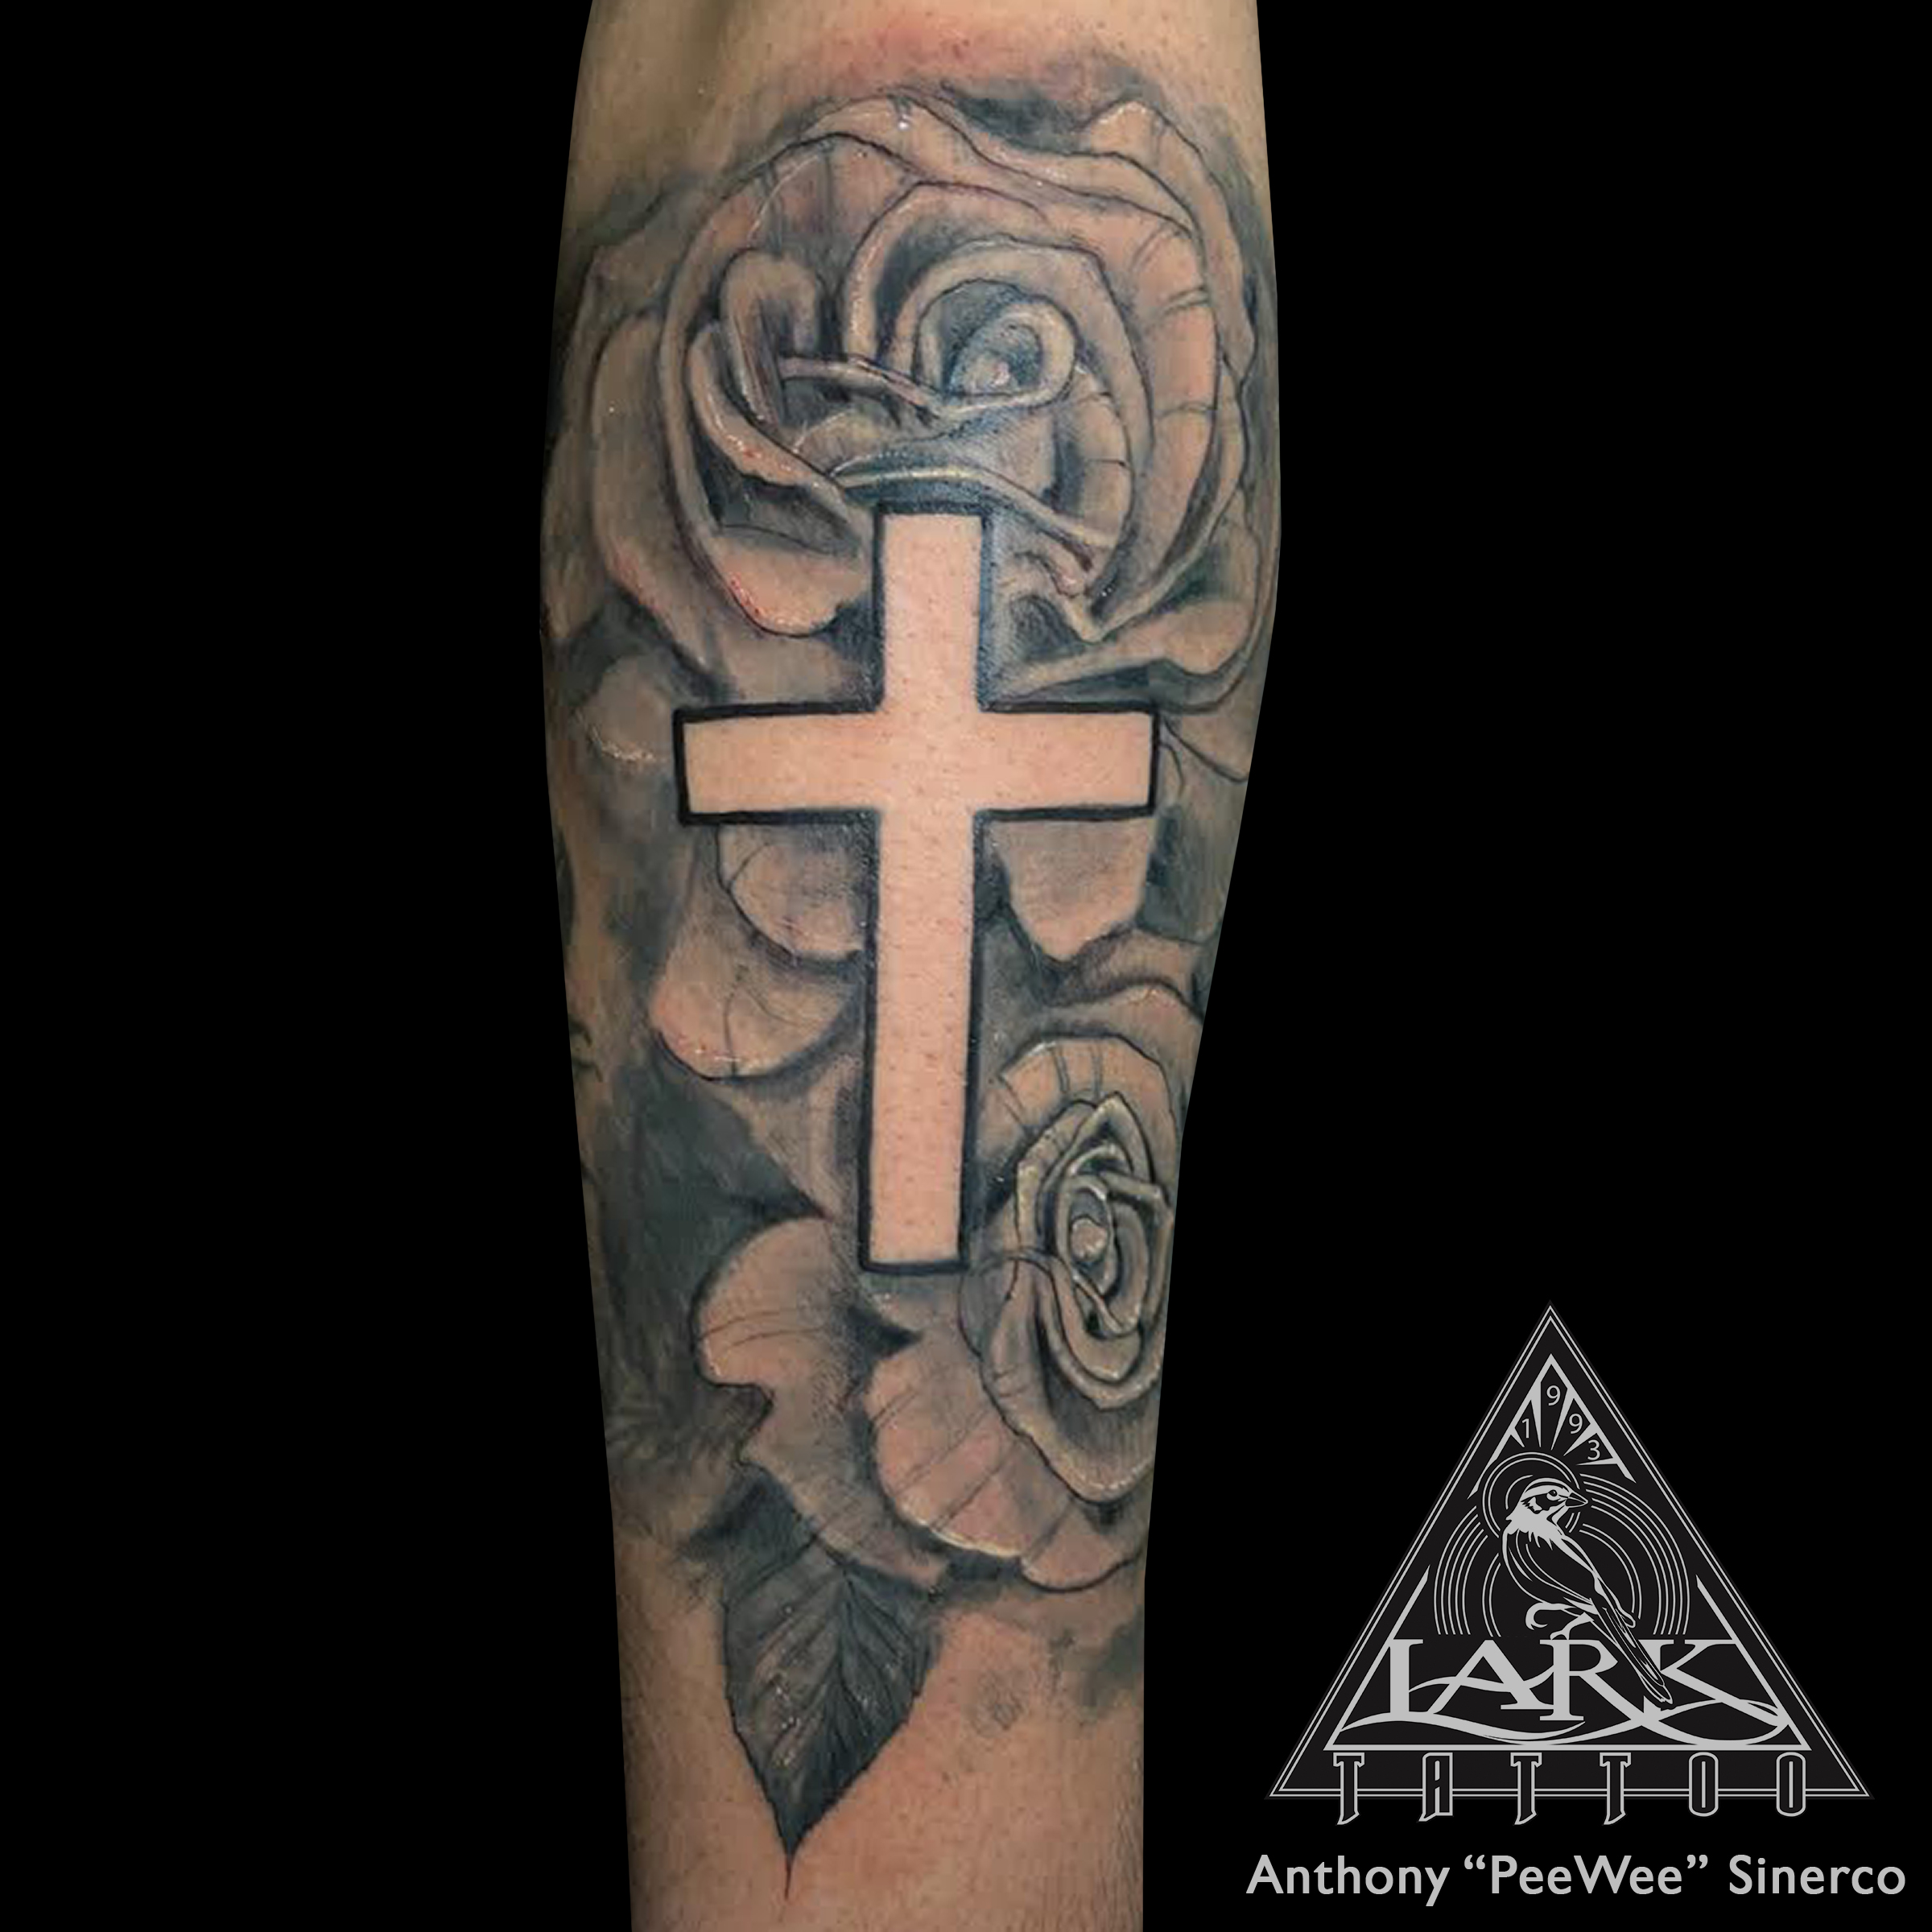 LarkTattoo, PeeWee, PeeWeeLarkTattoo, AnthonyPeeWeeSinerco, AnthonySinerco, Tattoo, Tattoos, BlackAndGray, BlackAndGrayTattoo, BlackAndGrey, BlackAndGreyTattoo, BNG, BNGInk, BNGInkSociety, BNGTattoo, Rose, RoseTattoo, Cross, CrossTattoo, Religious, ReligiousTattoo, TattooArtist, Tattoist, Tattooer, LongIslandTattooArtist, LongIslandTattooer, LongIslandTattoo, TattooOfTheDay, Tat, Tats, Tatts, Tatted, Inked, Ink, TattooInk, AmazingInk, AmazingTattoo, BodyArt, LarkTattooWestbury, Westbury, LongIsland, NY, NewYork, USA, Art, Tattedup, InkedUp, LarkTattoos